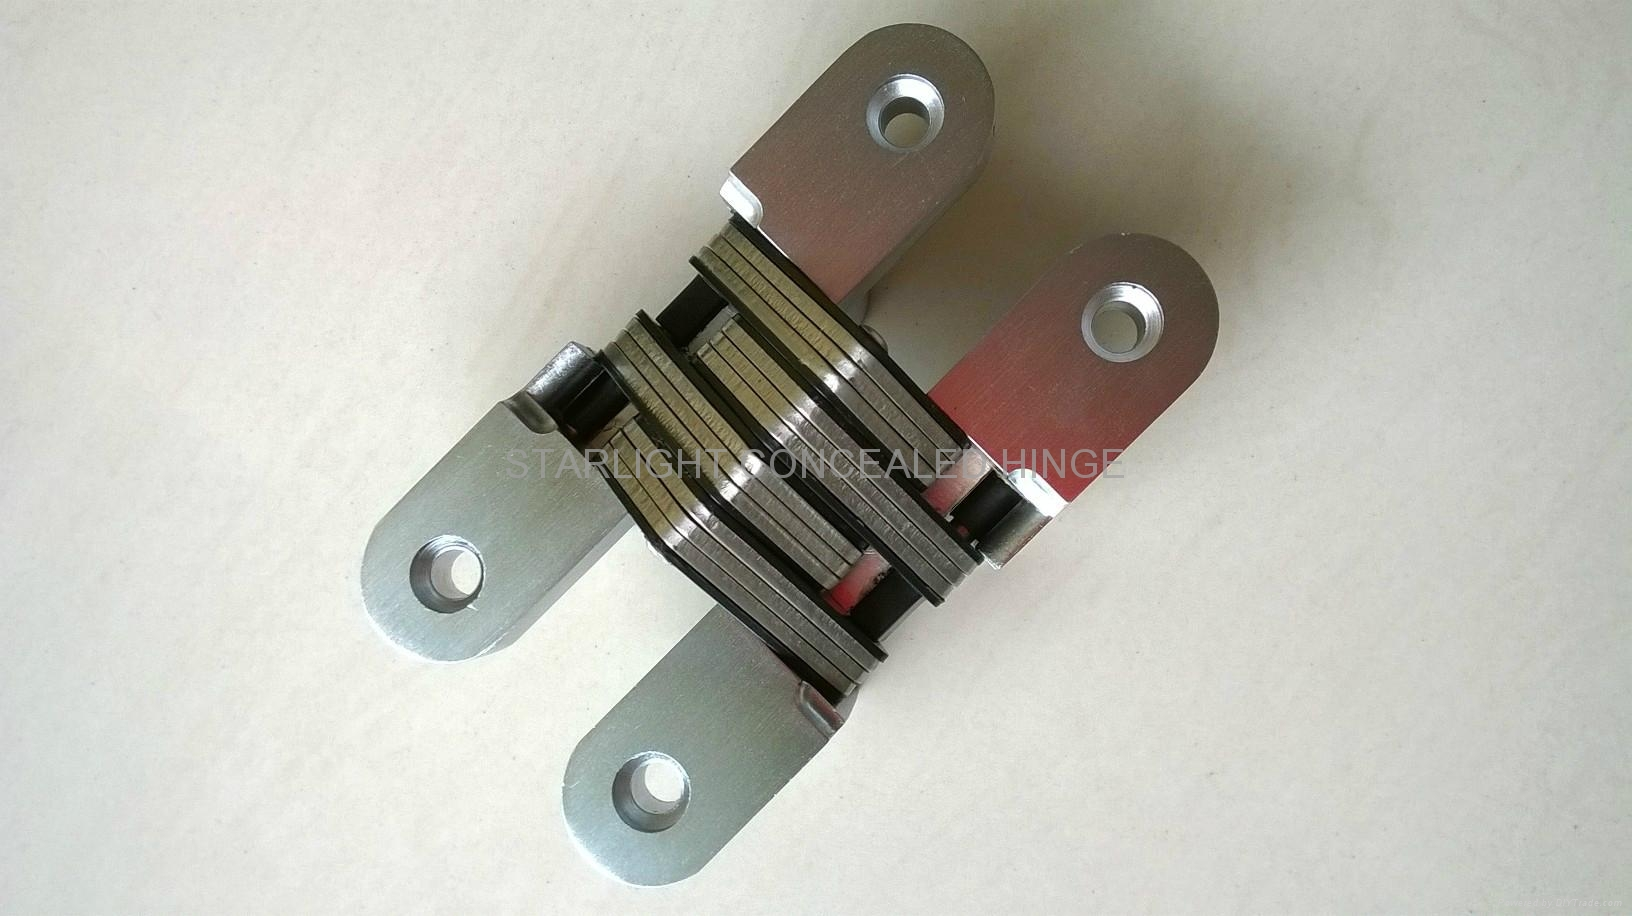 Door Hinges Product : Zinc alloy concealed hinge soss zh starlight